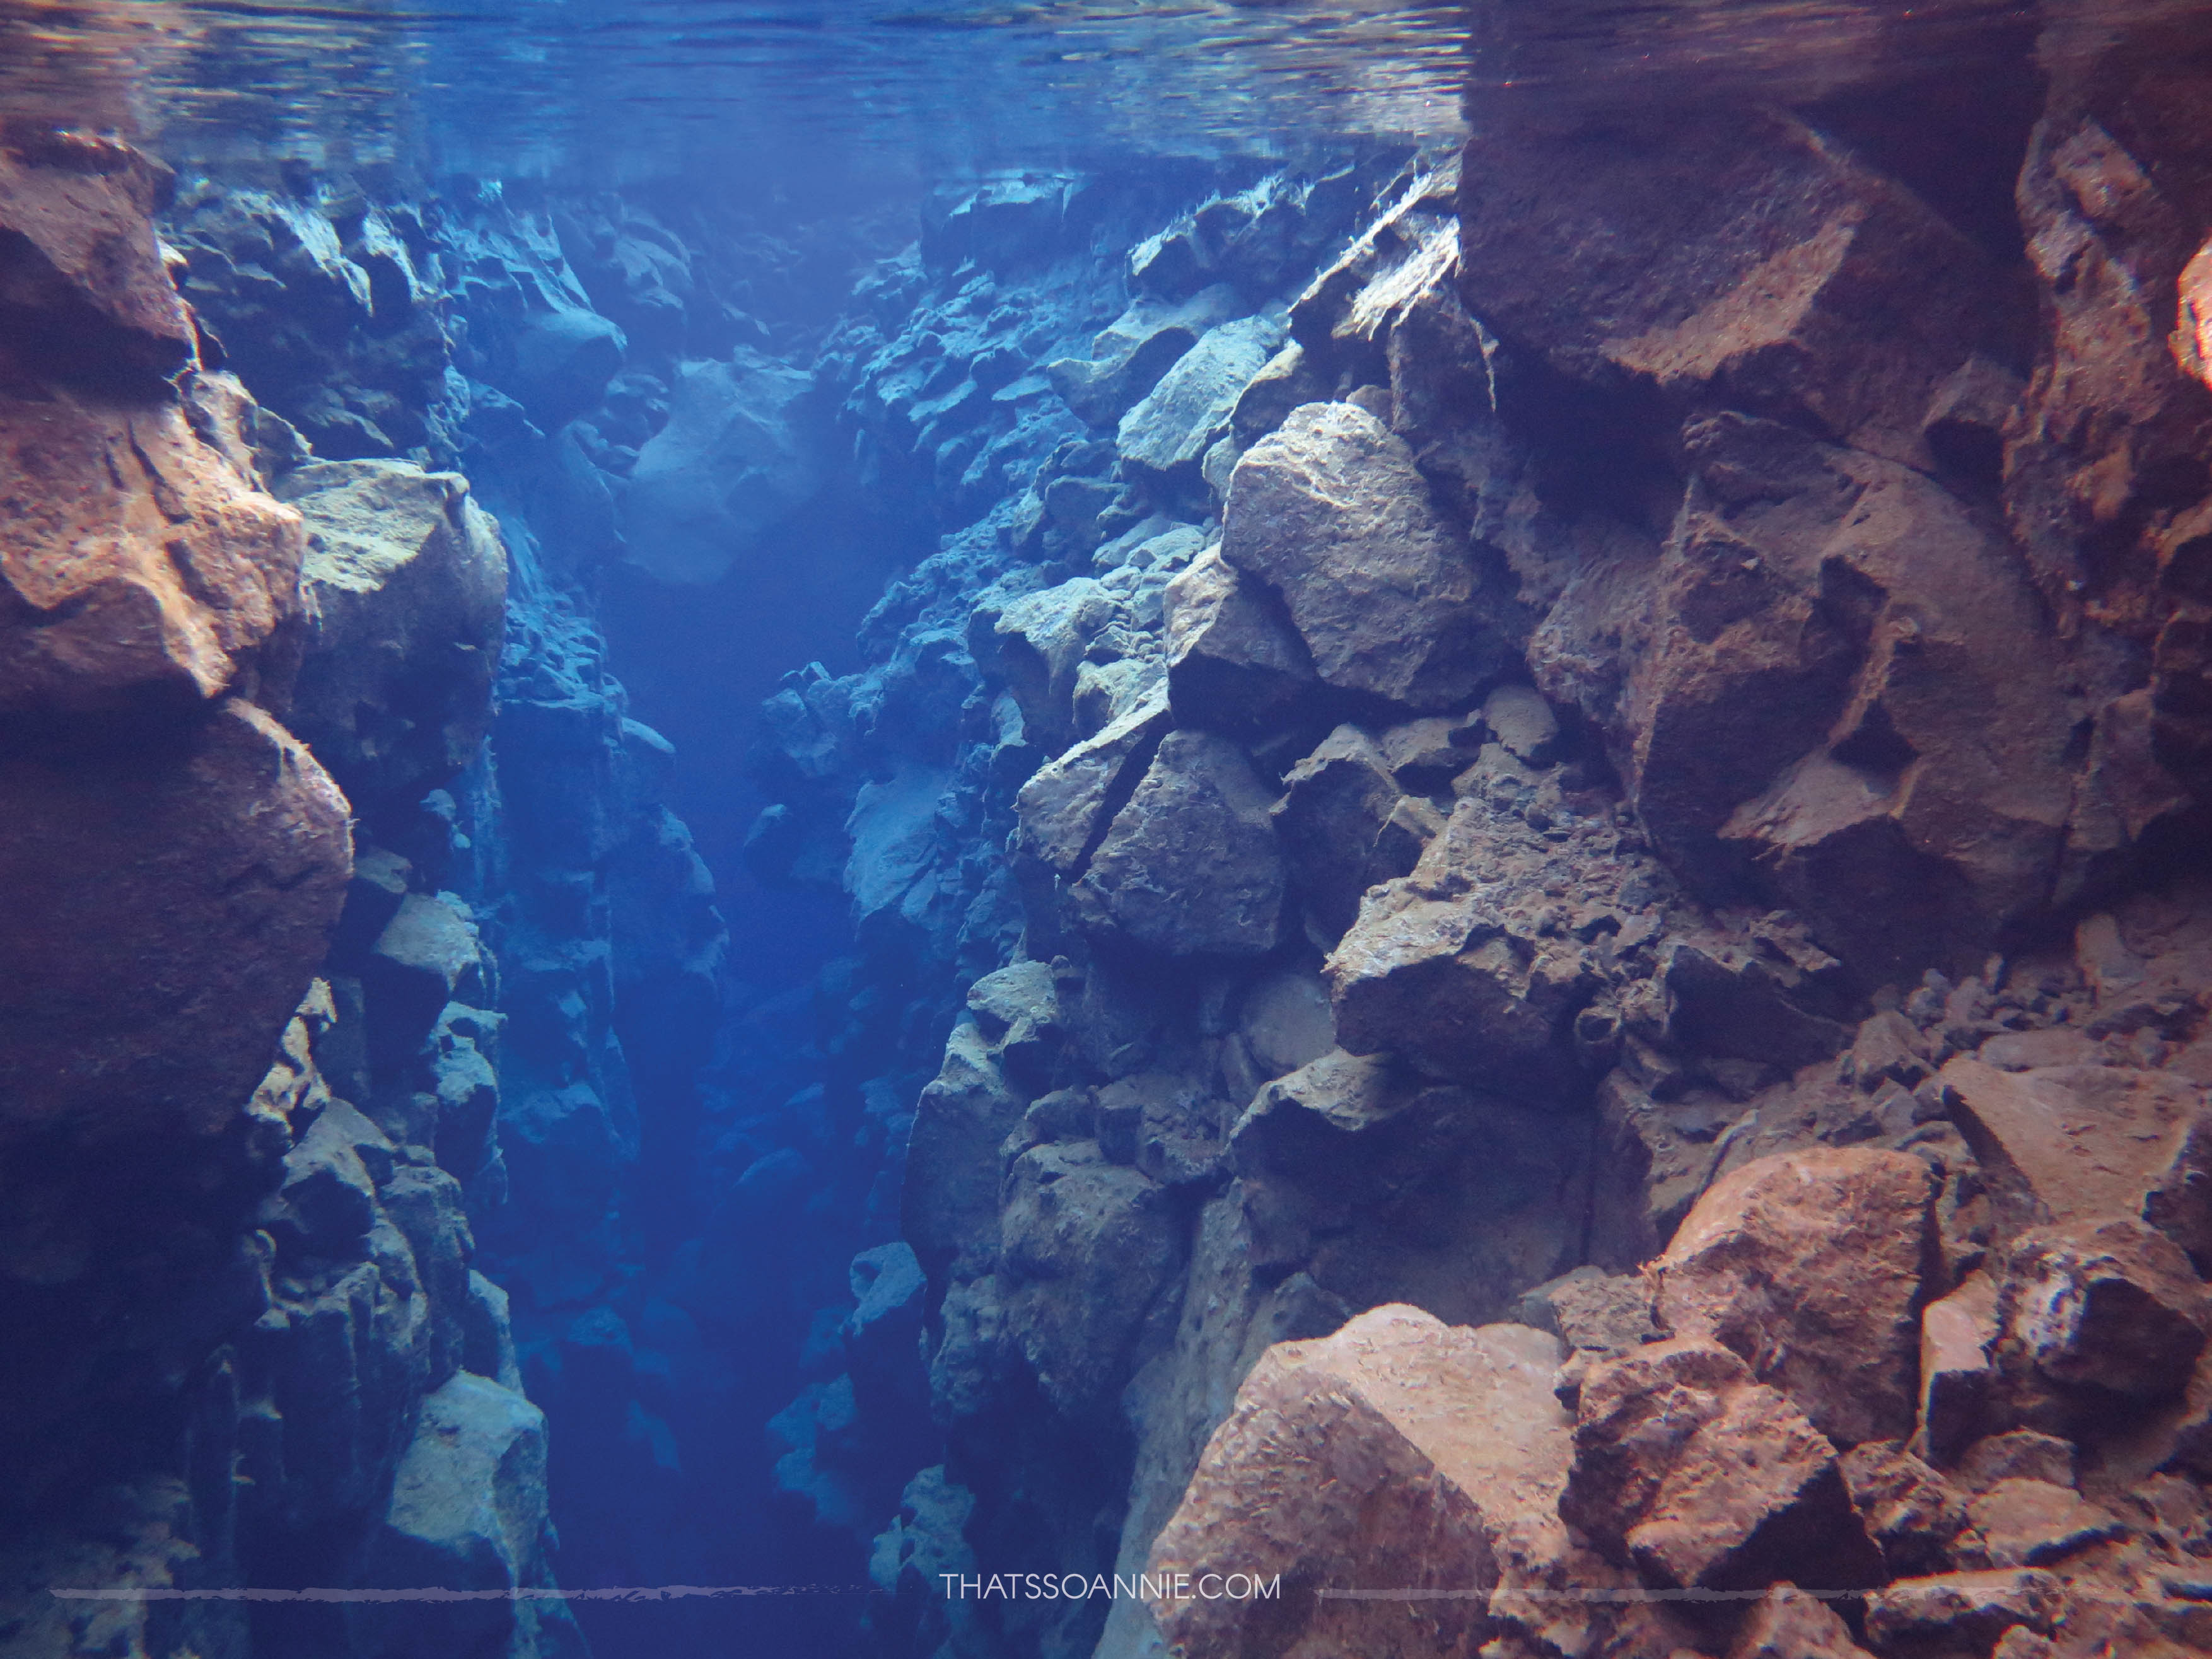 Snorkeling between American and Eurasian Tectonic Plates at Silfra Fissure, Iceland | www.thatssoannie.com